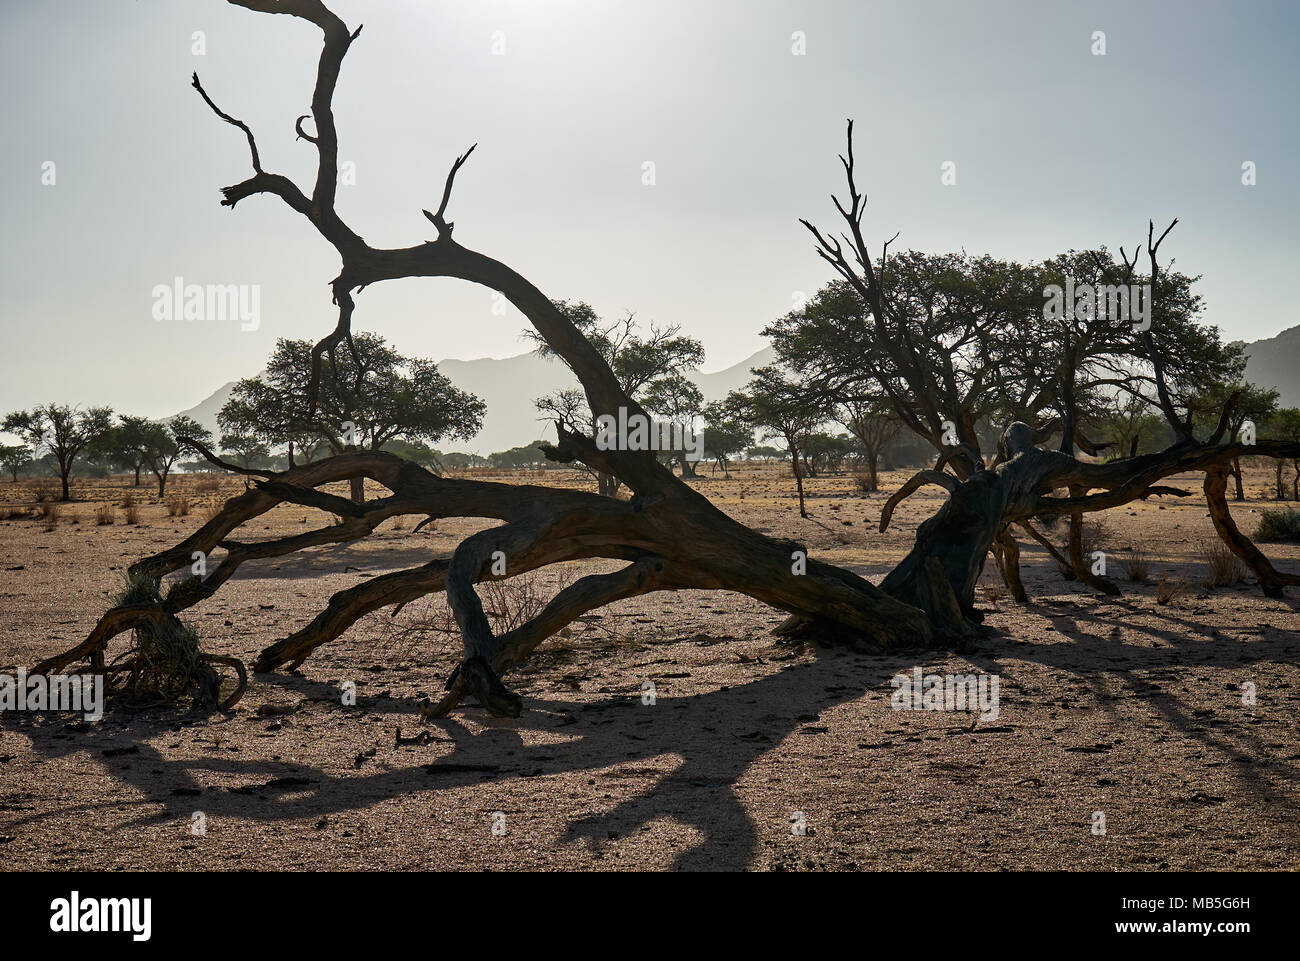 dead tree in tranquil landscape on Farm Namtib, Tiras mountains, Namibia, Africa - Stock Image